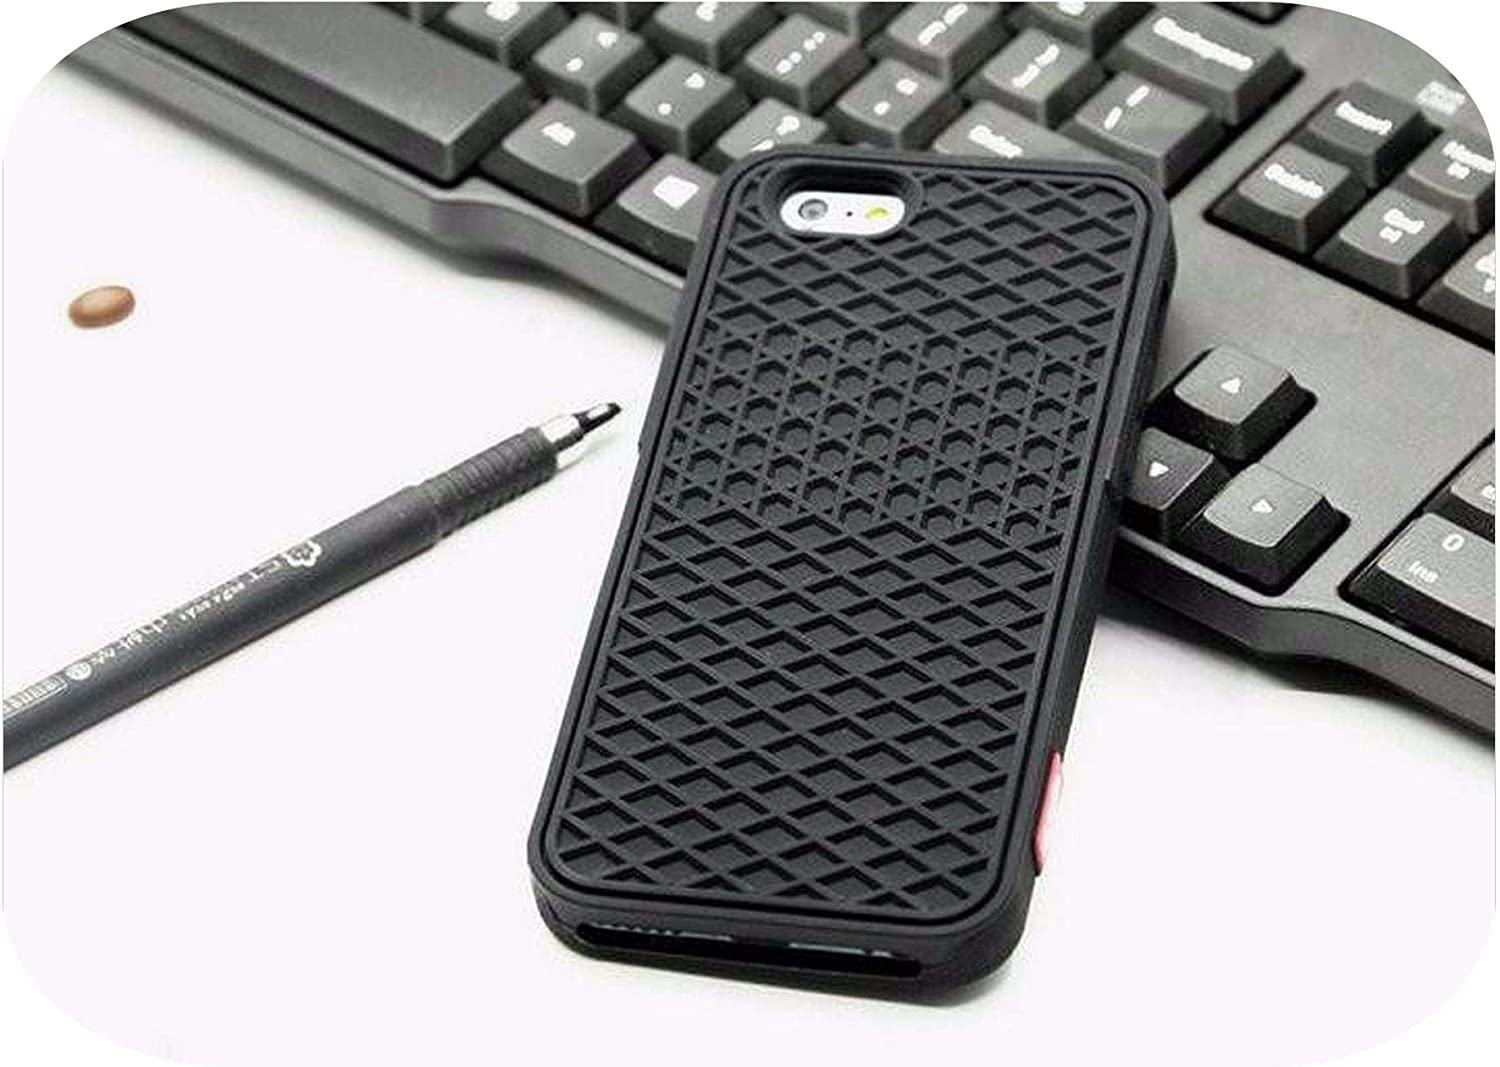 Waffle case Rubber Cover Case for iPhone 11 Pro Max 5S 6 6S 7 8 Plus Xs Max Xr Shoe Sole Phone Case Back Cover-Brown Black-for iPhone 11 Pro